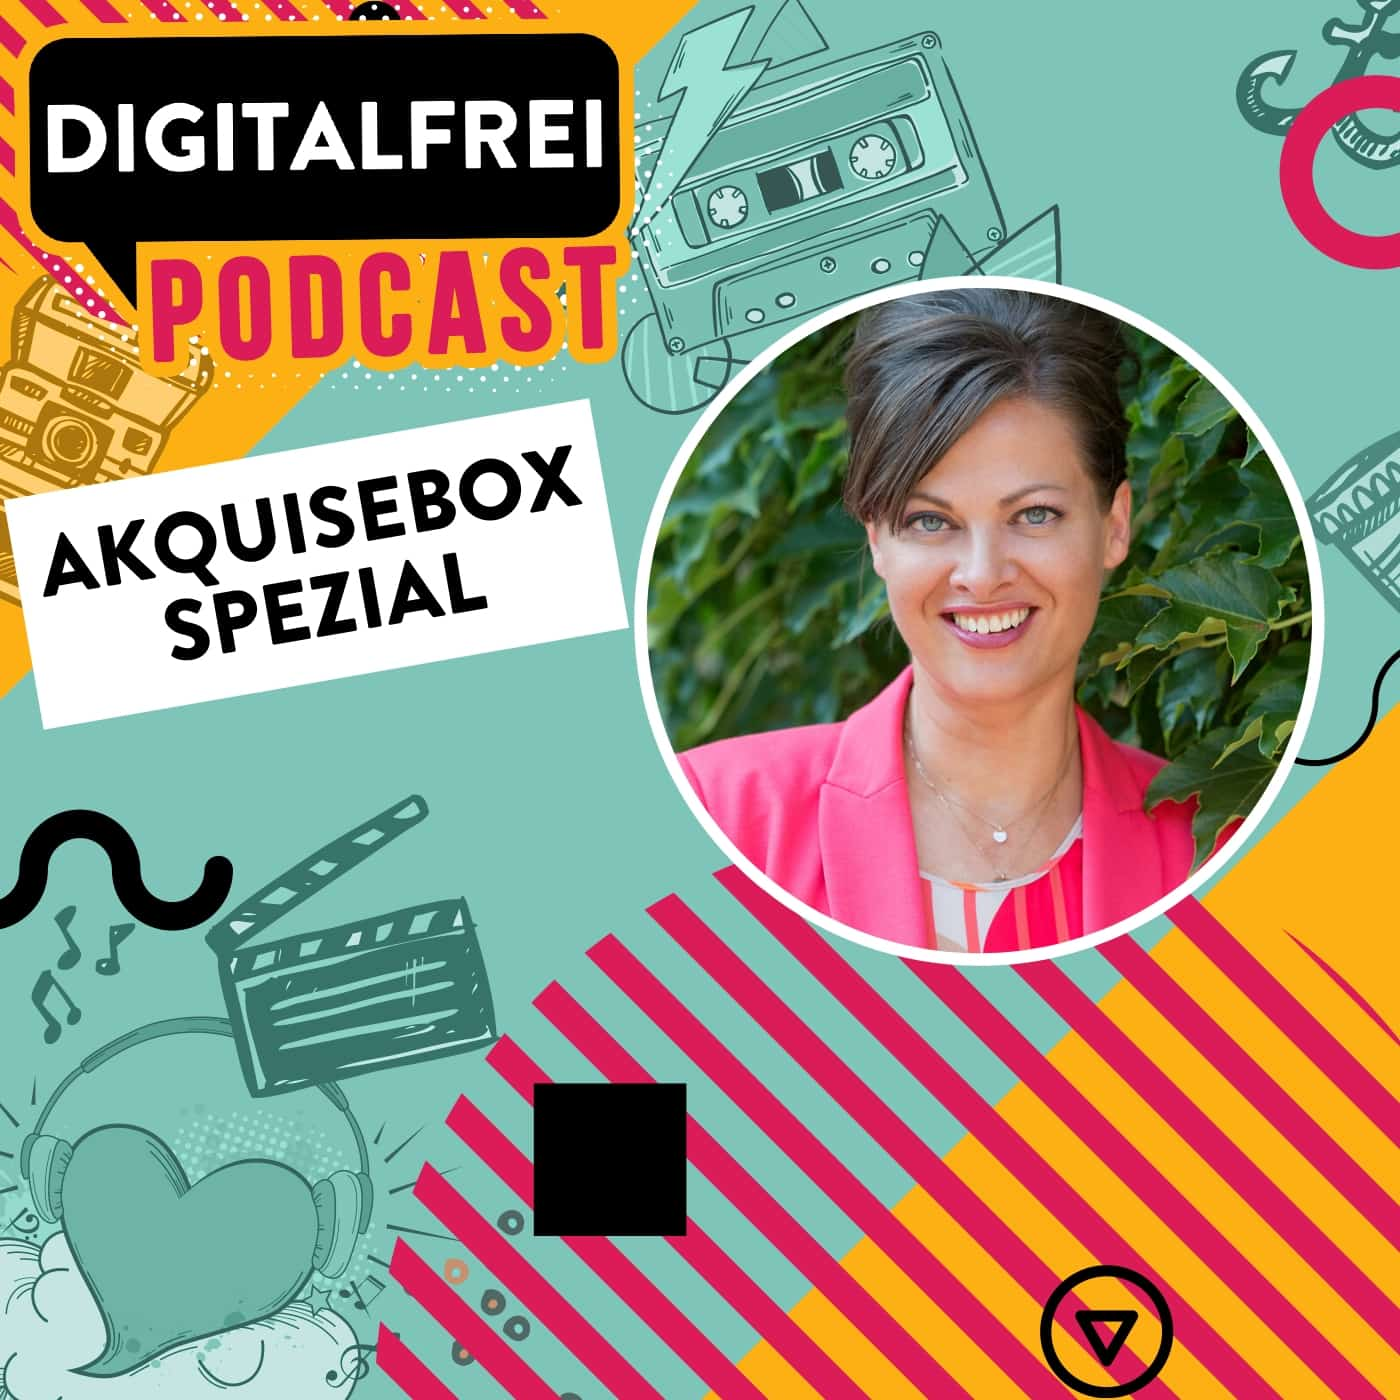 Akquisebox Spezial – Shailia Stephens – Business & Marketing für Solopreneure